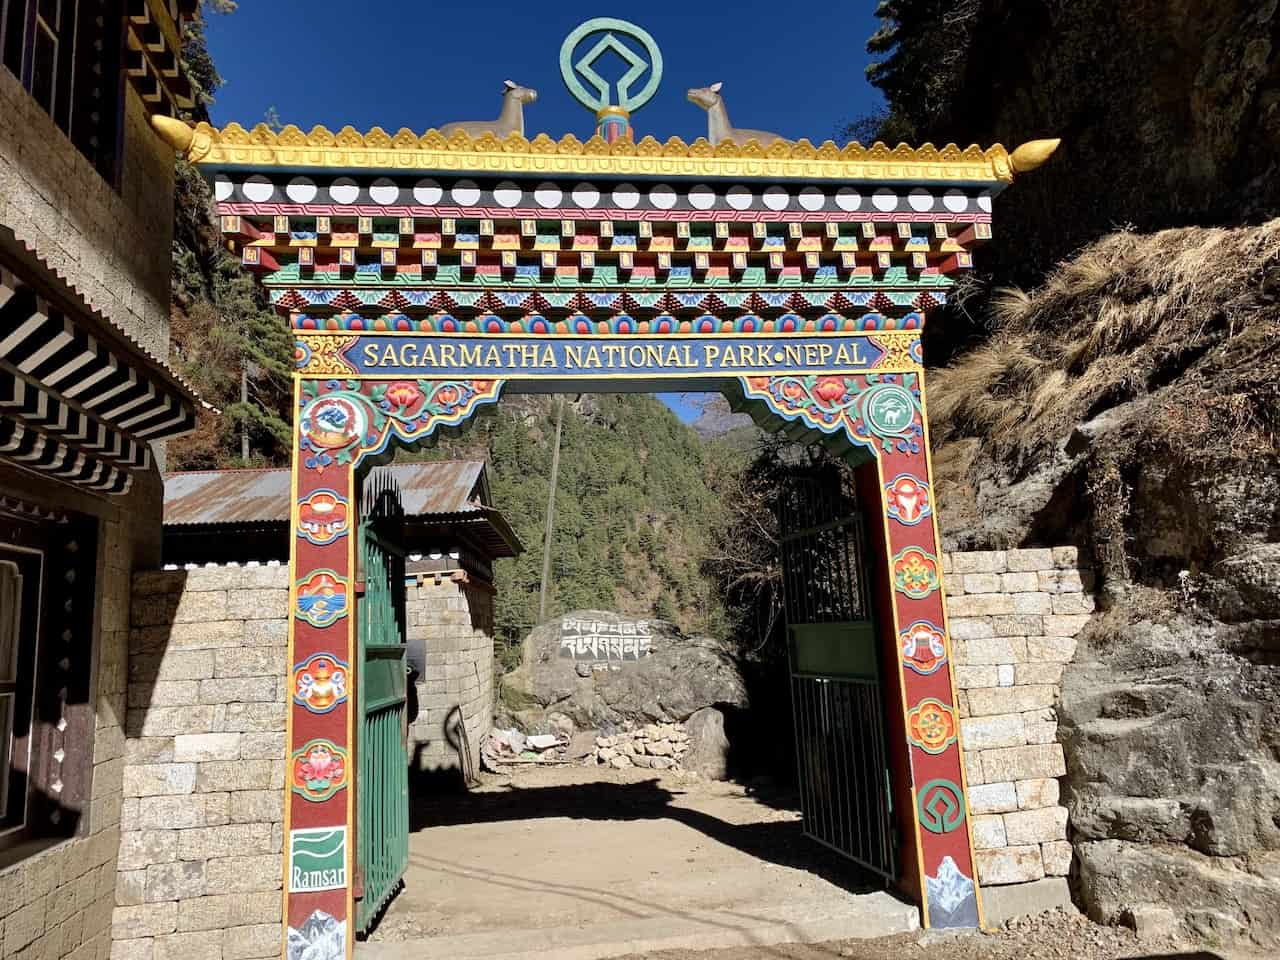 Sagarmatha National Park Entrance